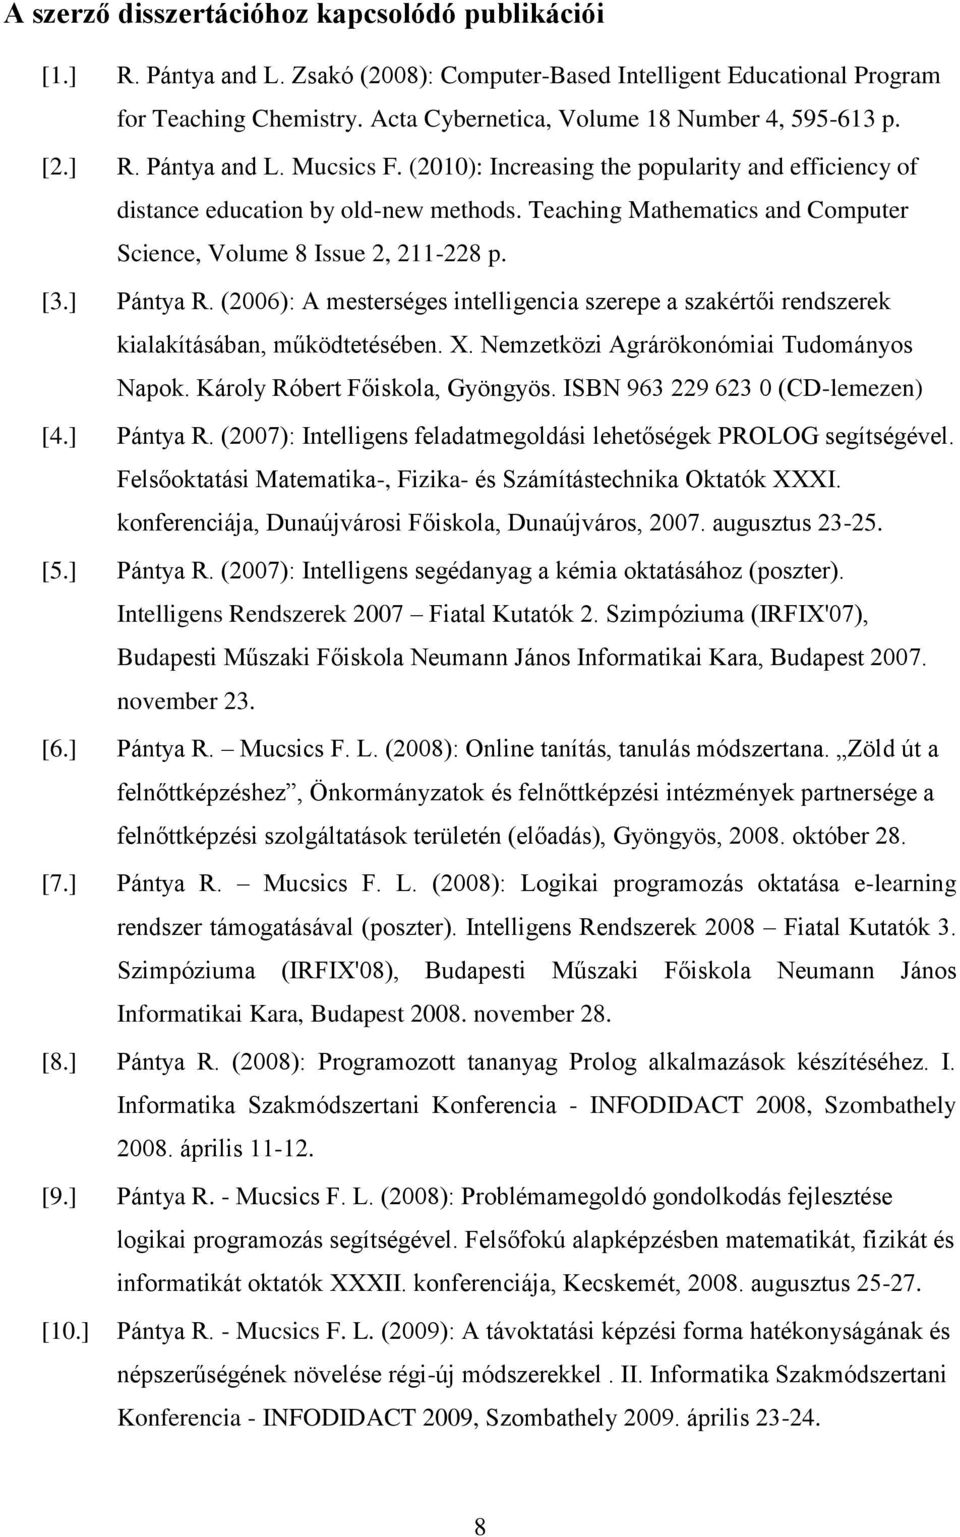 Teaching Mathematics and Computer Science, Volume 8 Issue 2, 211-228 p. [3.] Pántya R. (2006): A mesterséges intelligencia szerepe a szakértői rendszerek kialakításában, működtetésében. X.